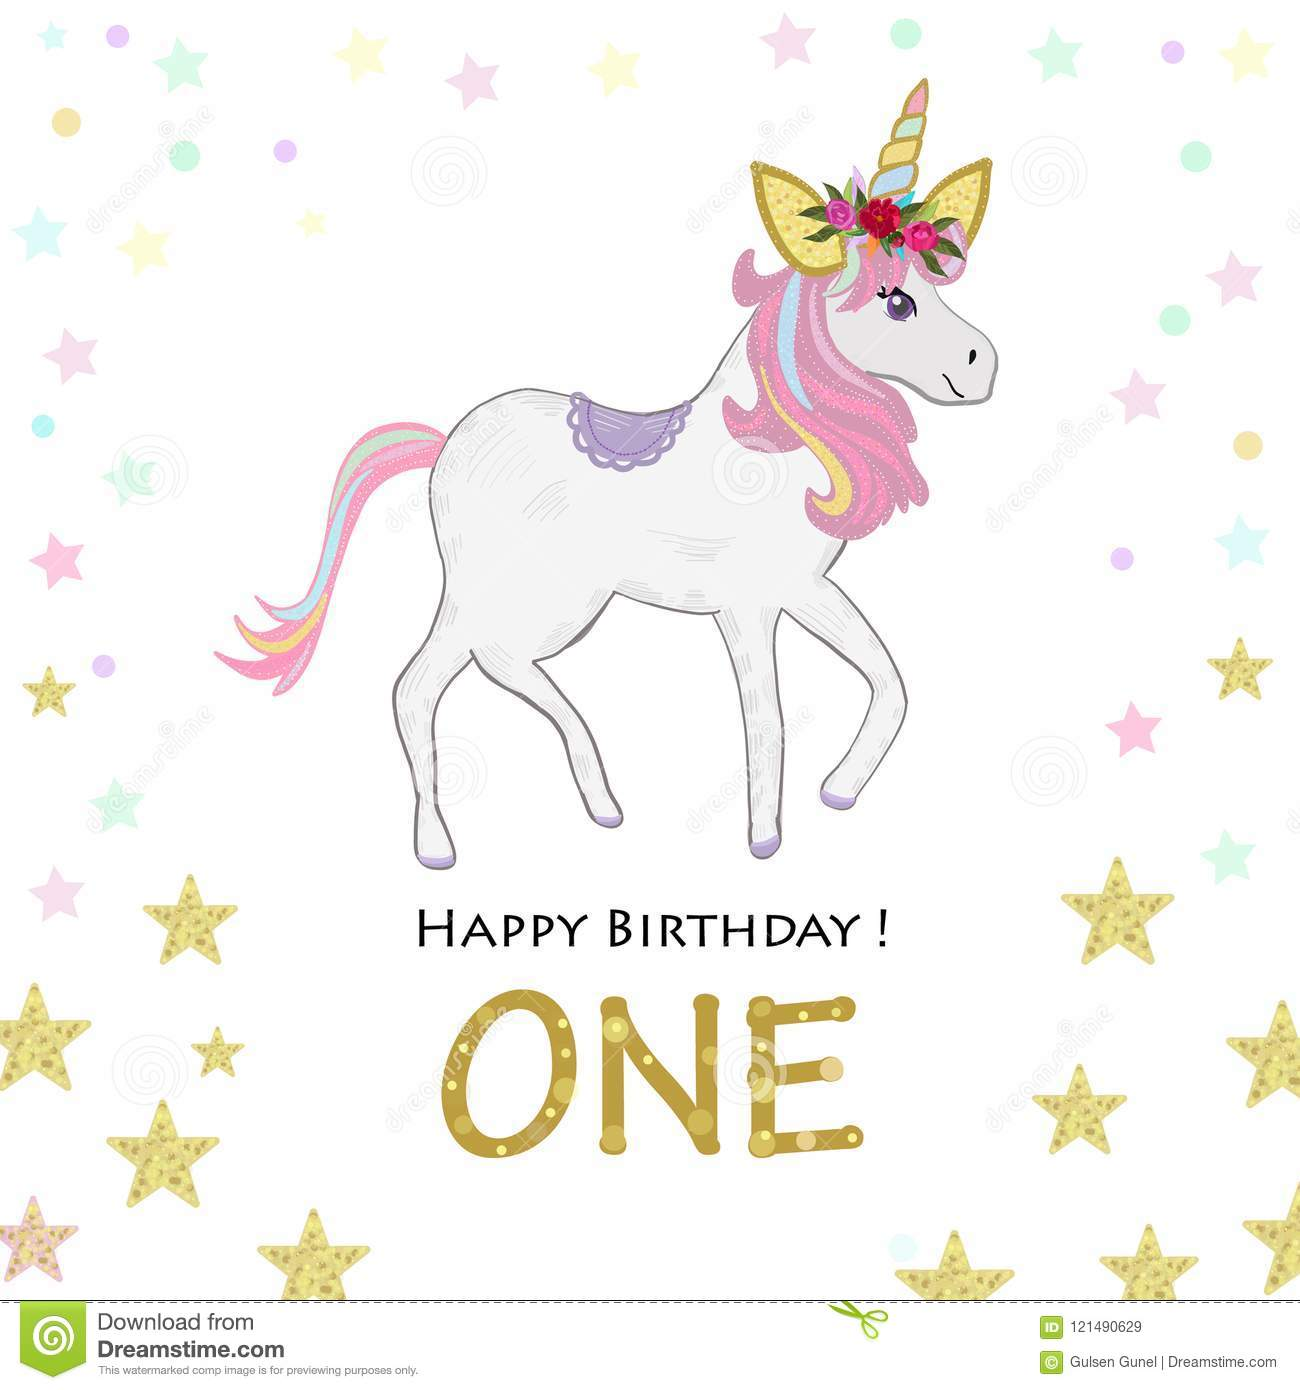 https www dreamstime com first birthday one unicorn invitation party greeting card background image121490629